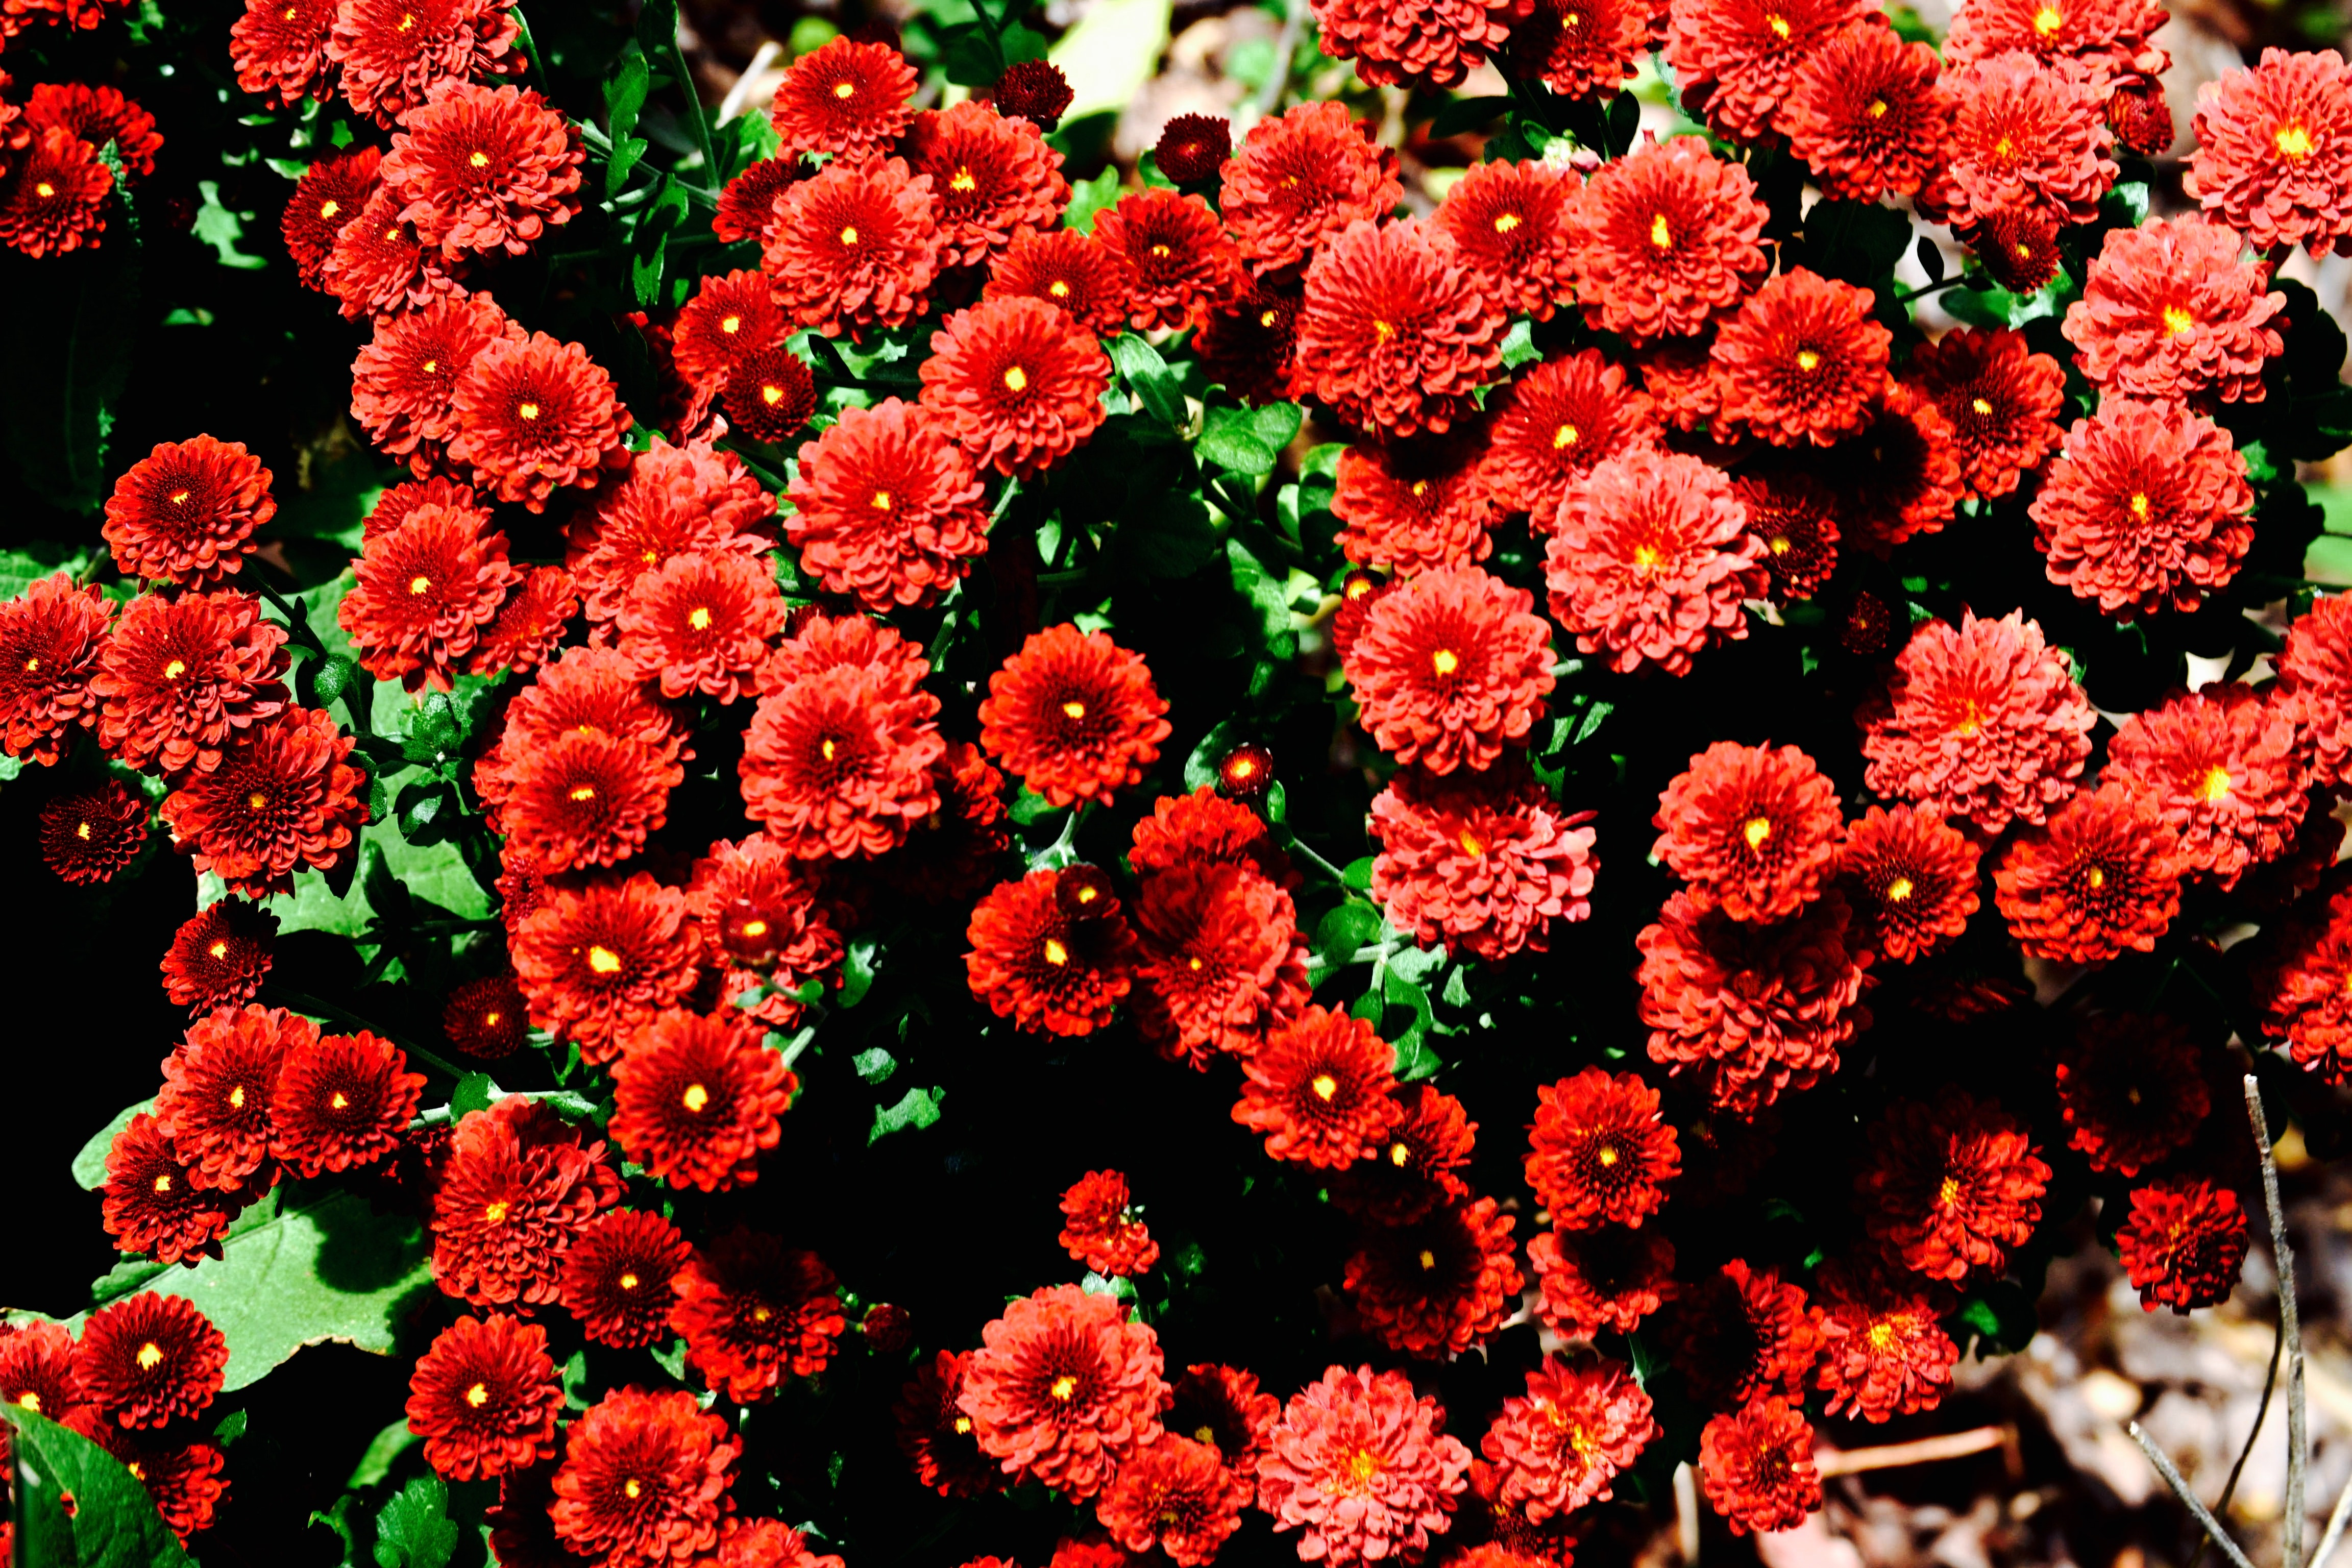 Red and green flowers photo